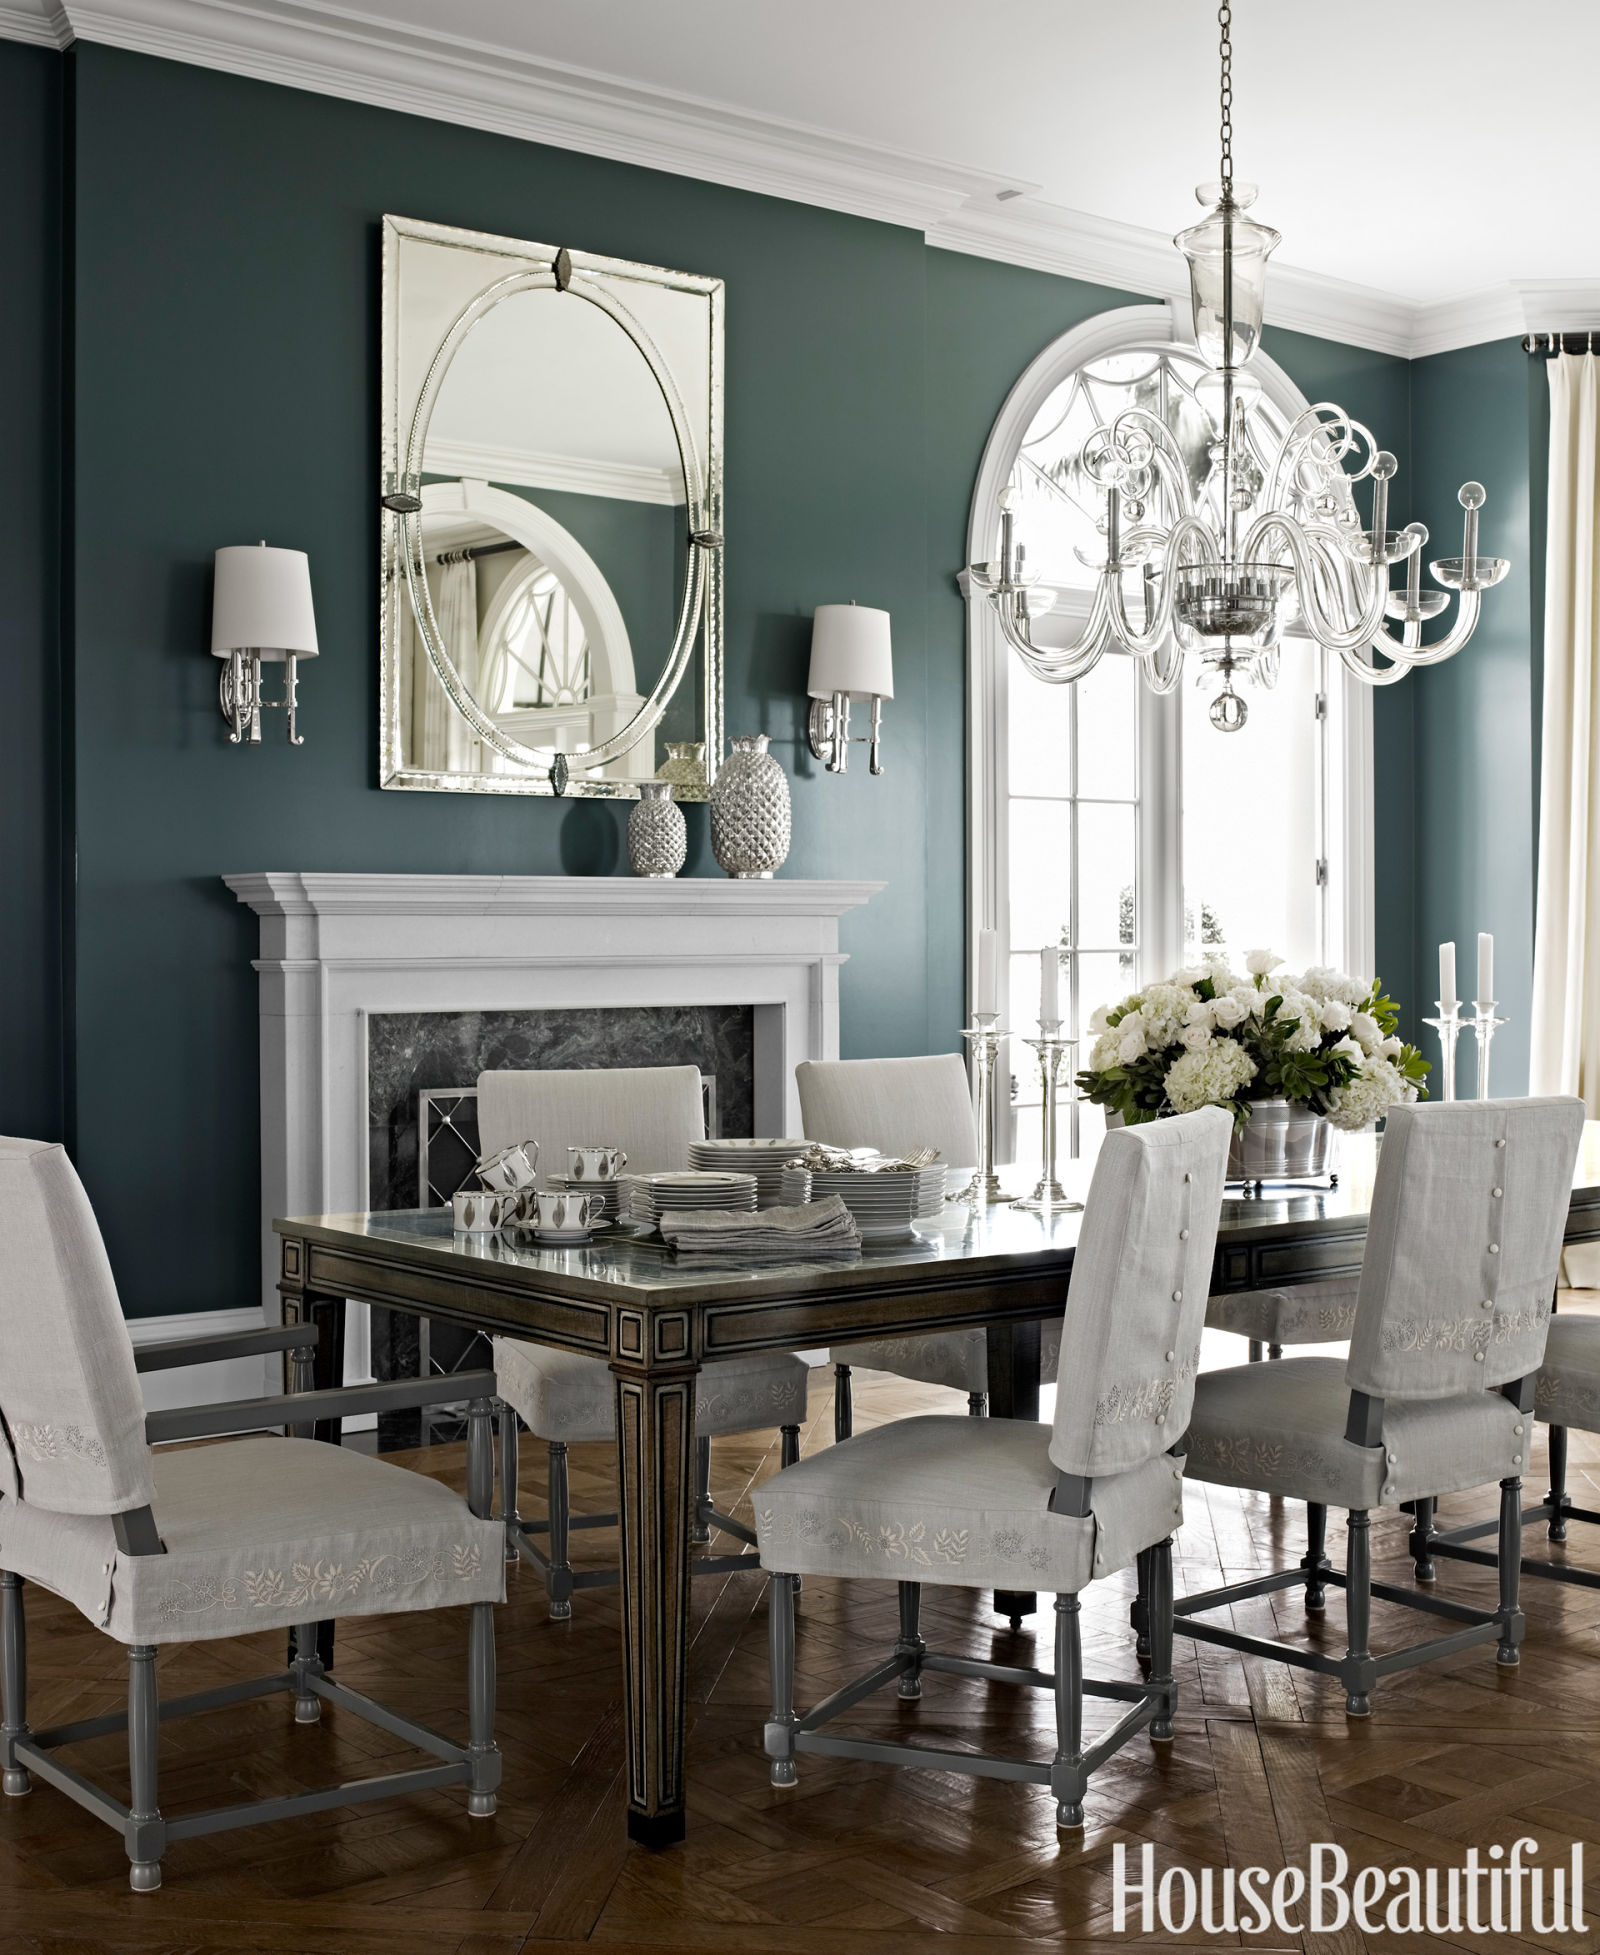 Gray Dining Room Ideas: Decorating With Dark Colors